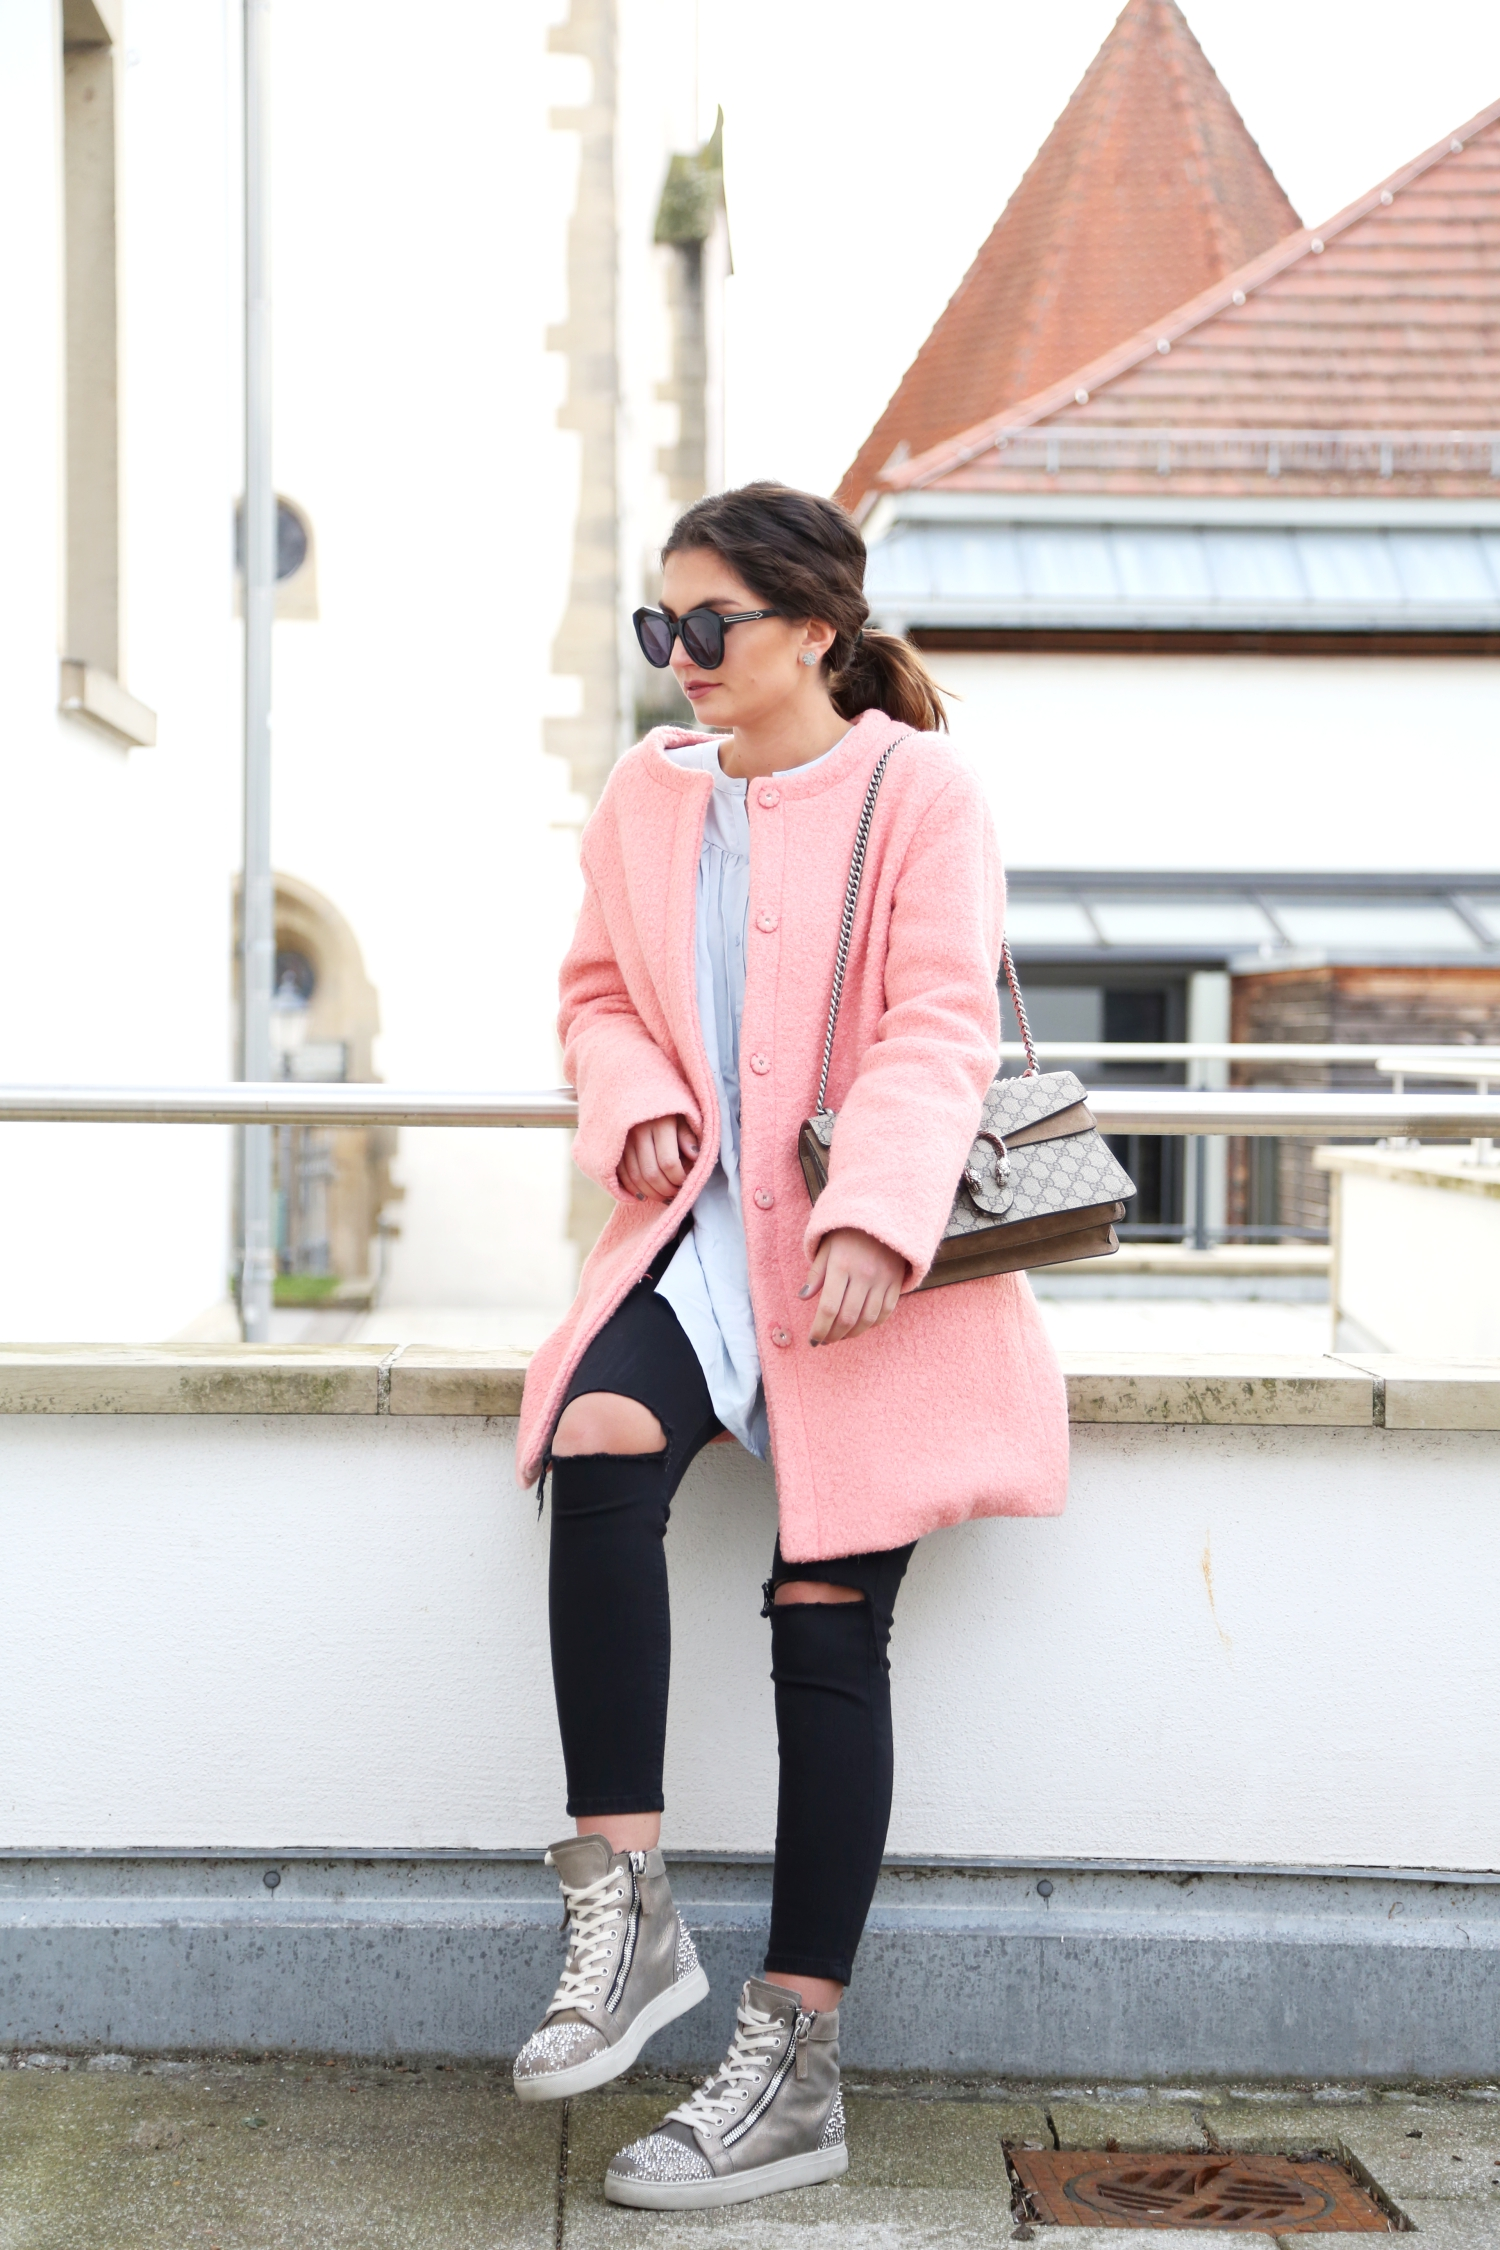 outfit-pink-coat-sneaker-casual-look-gucci-bag-karen-walker-sunglasses